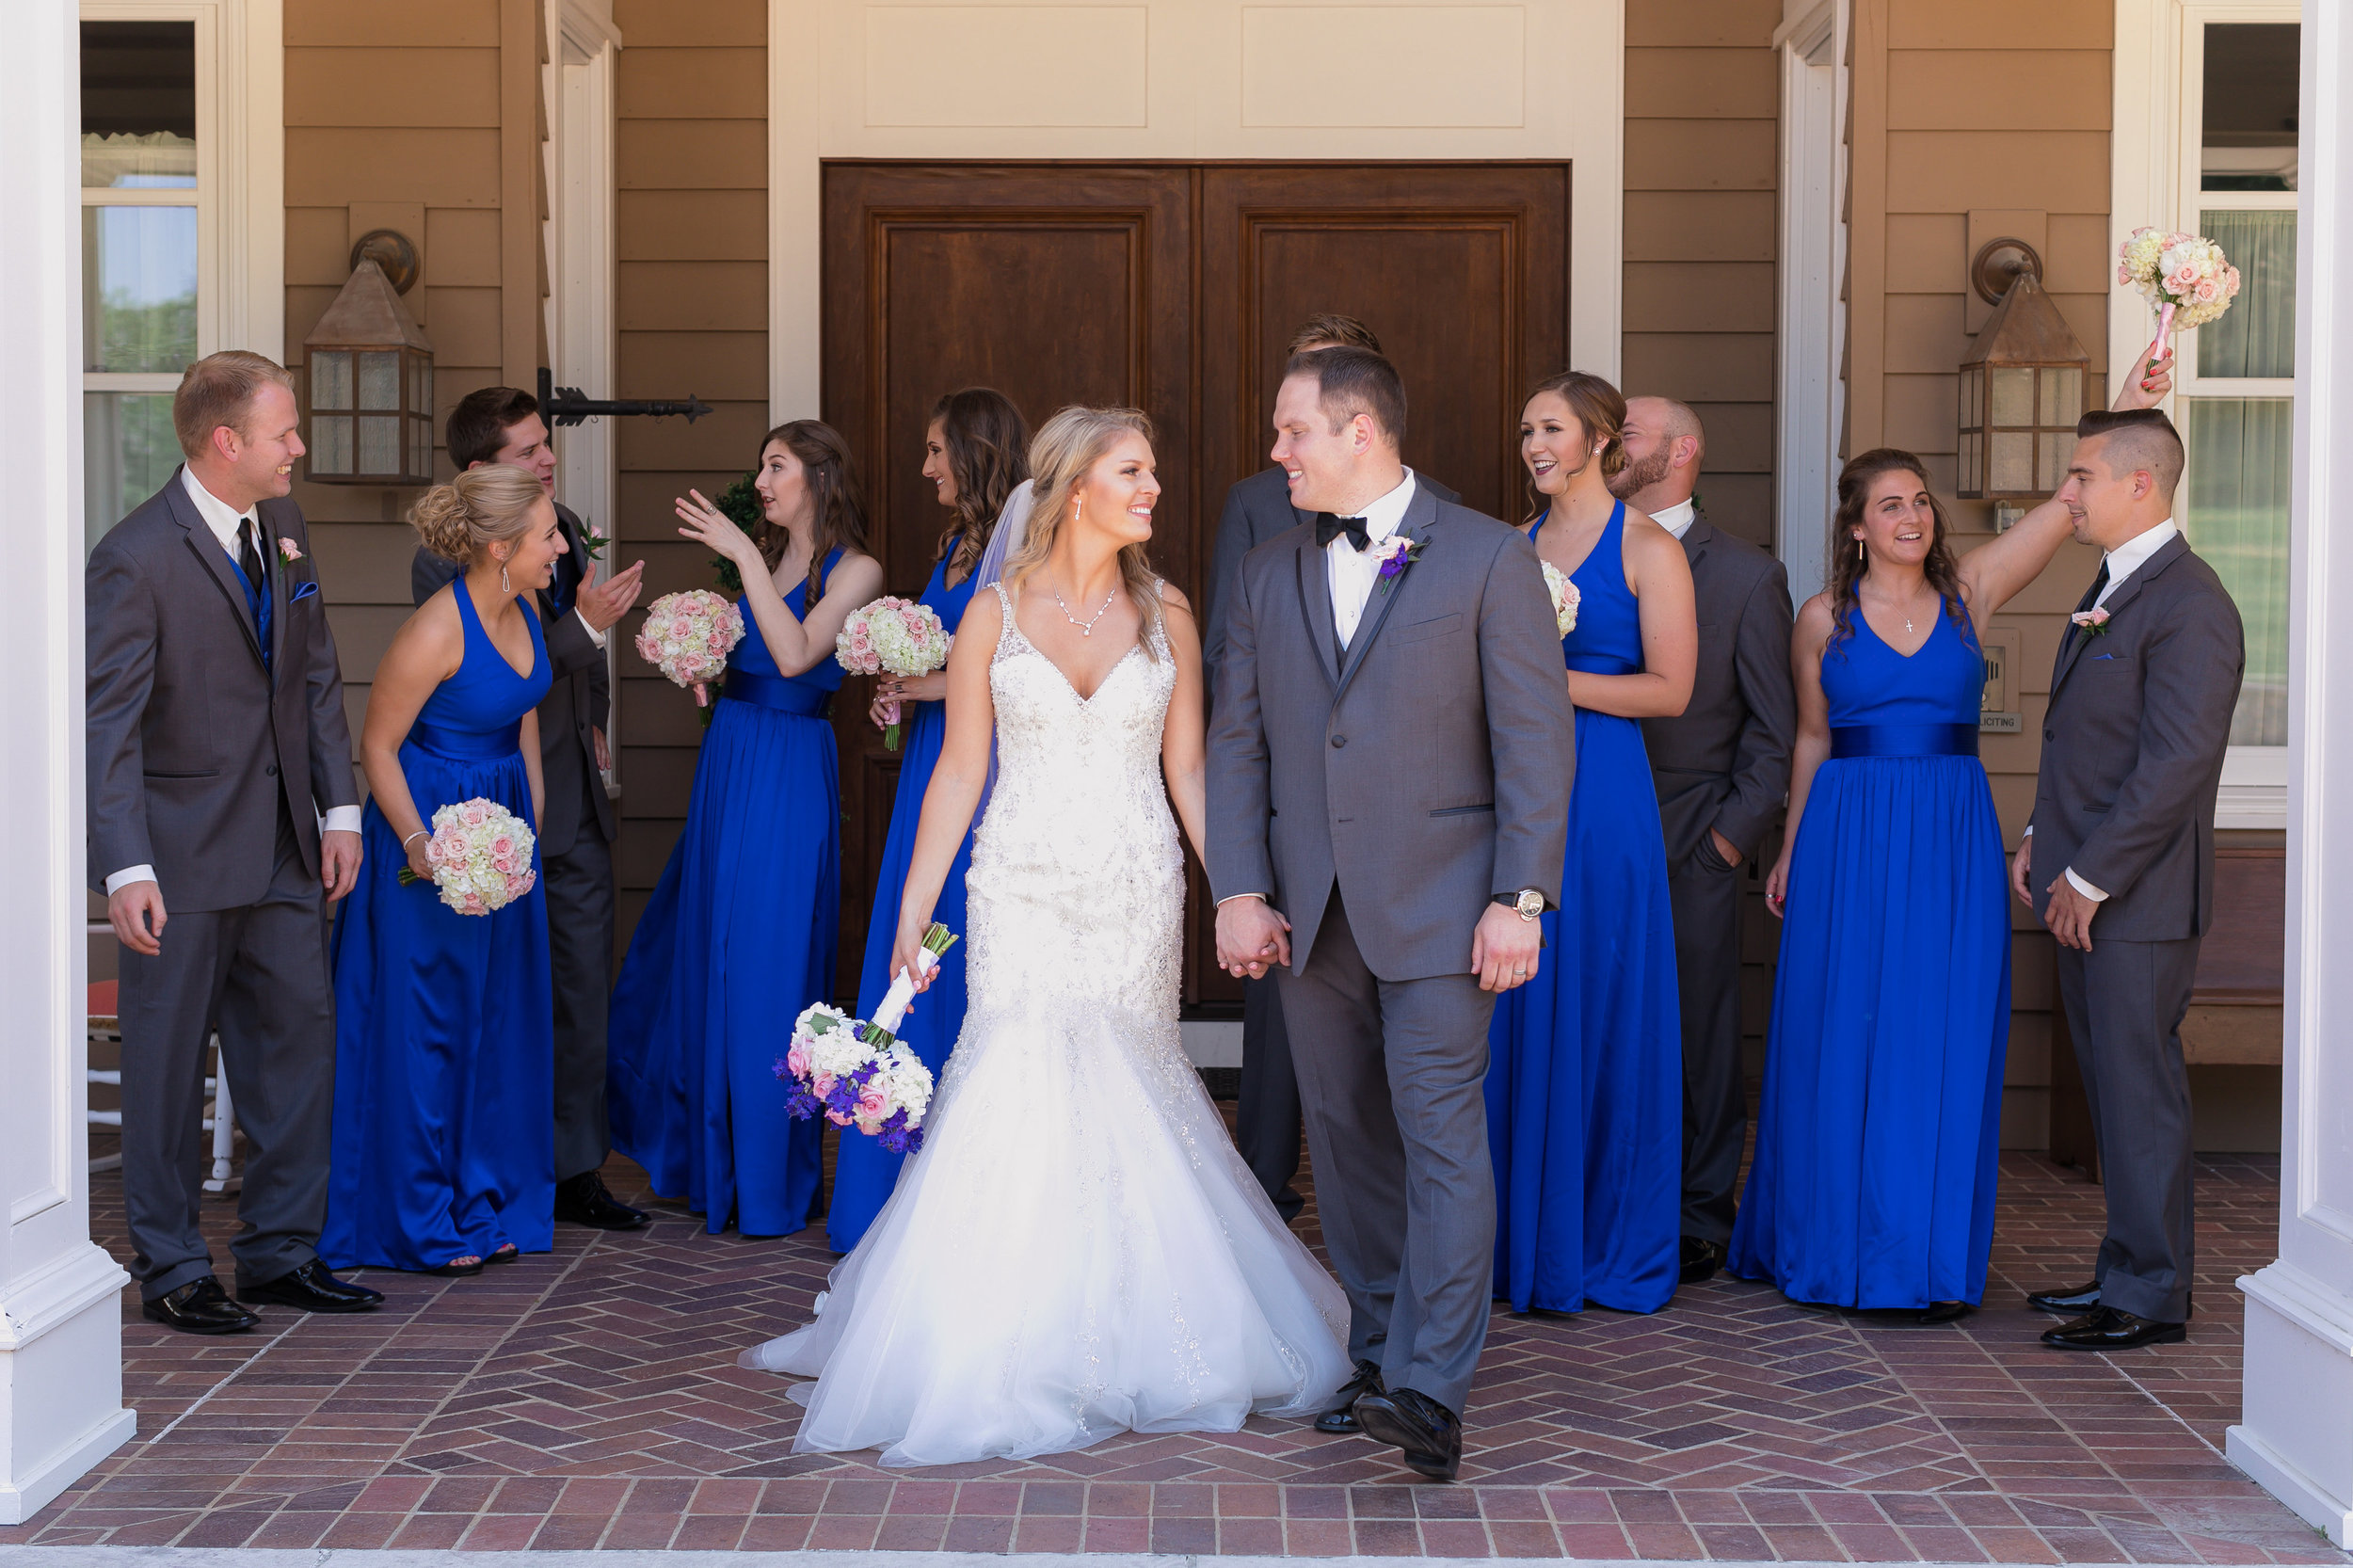 iowa-wedding-beaded-dress-cedar-rapids-backyard-wedding-getting-ready-planned-by-mostly-becky-weddings-bridal-party-blue-dresses-gray-suits